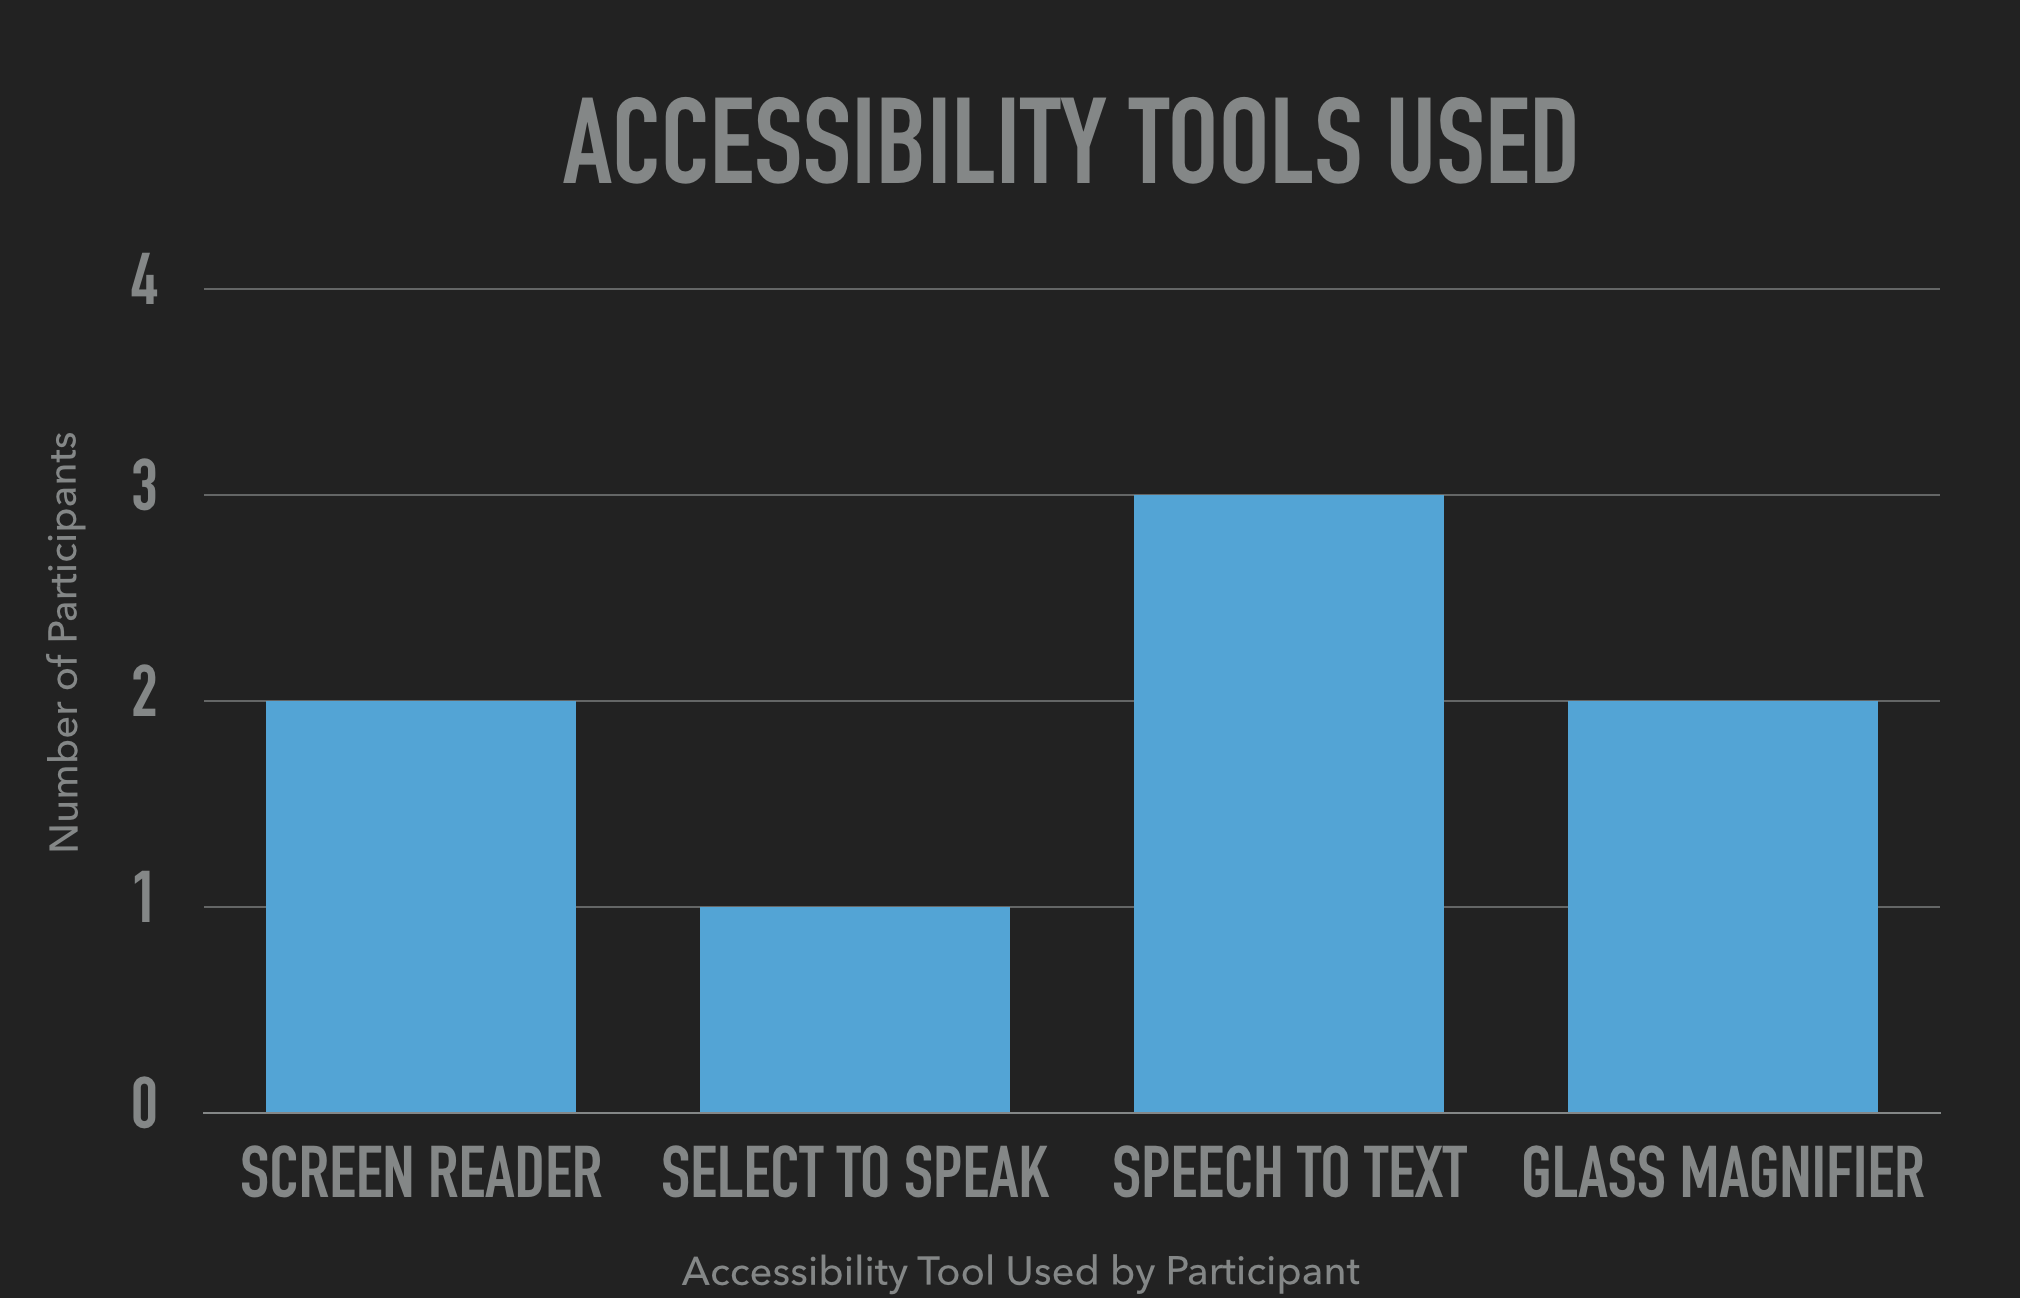 Accessibility Tools Used_2_ScreenReader_1_Select_to_Speak_3Speech_To_text_2_Magnifier.png